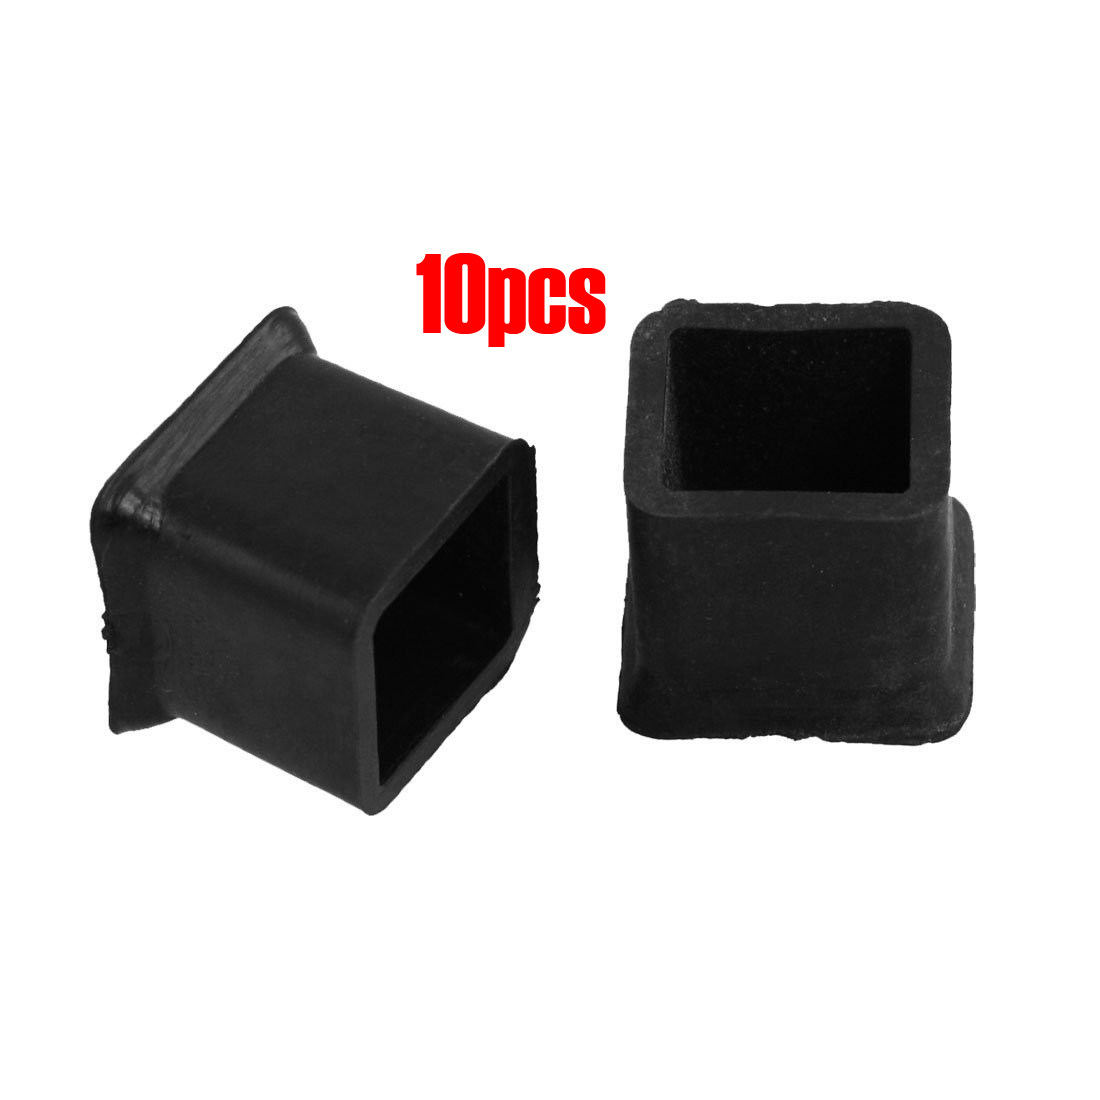 Botique New 10Pcs Furniture Chair Table Leg Rubber Foot Covers Protectors 20mm x 20mm szs hot new 10pcs furniture chair table leg rubber foot covers protectors 20mm x 20mm free shipping